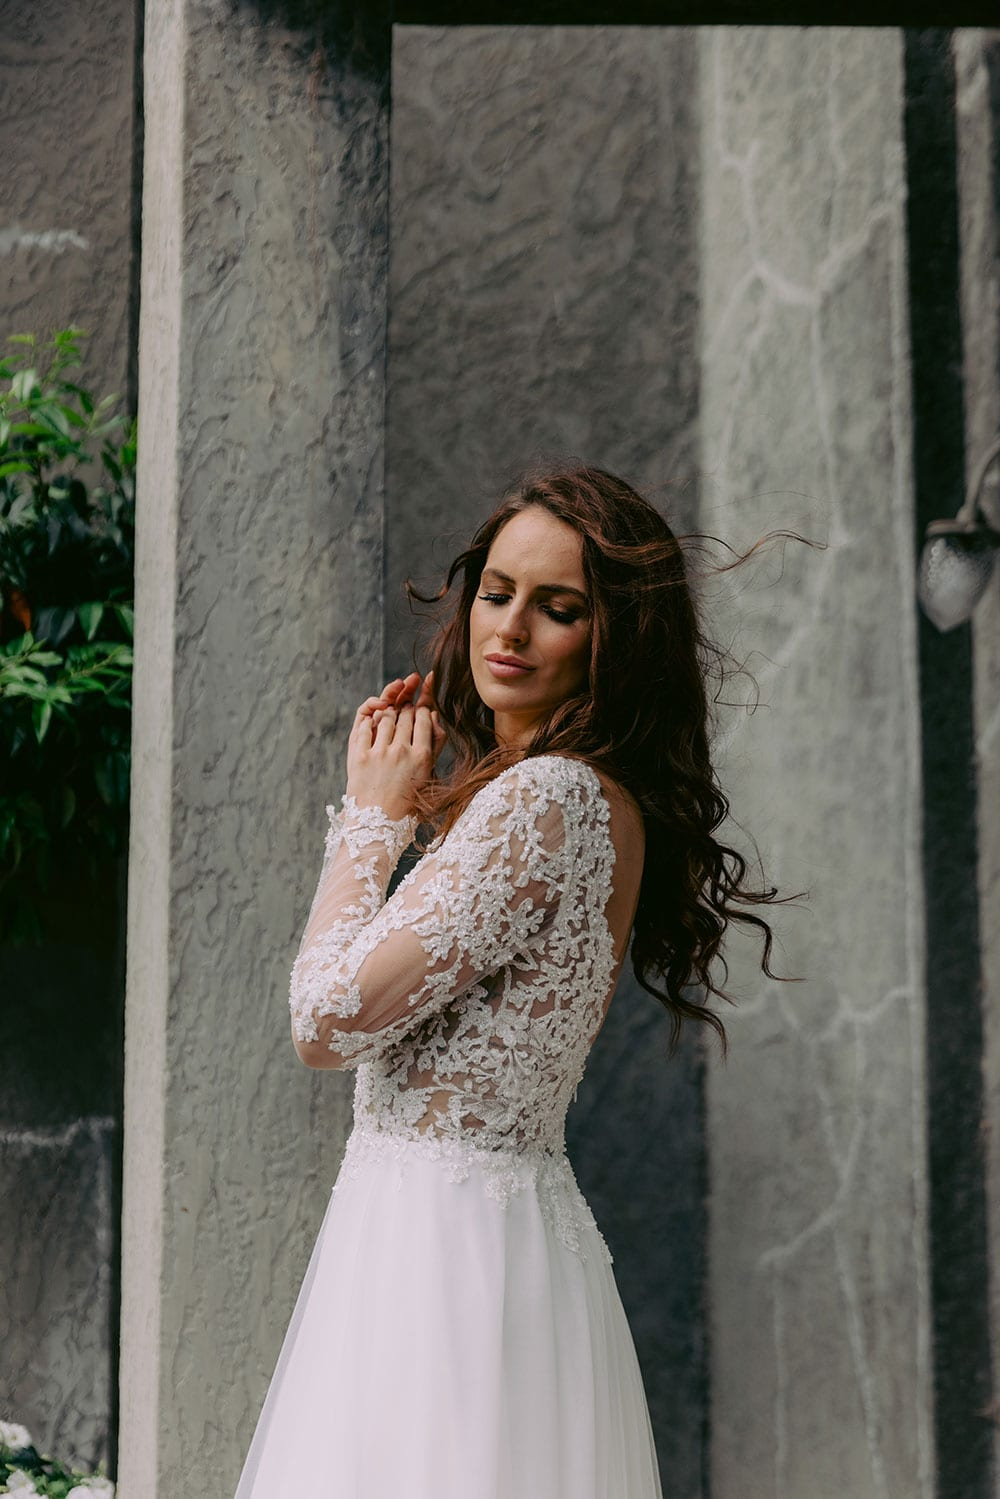 Maia Wedding gown from Vinka Design - This feminine & romantic wedding dress features beautiful pearl & bead embroidery over 3D lace. Long sleeves with pearl buttons, illusion neckline and skirt of dreamy layers of soft tulle. Model wearing gown showing long sleeve detail outside heritage building in Clevedon, near Auckland.